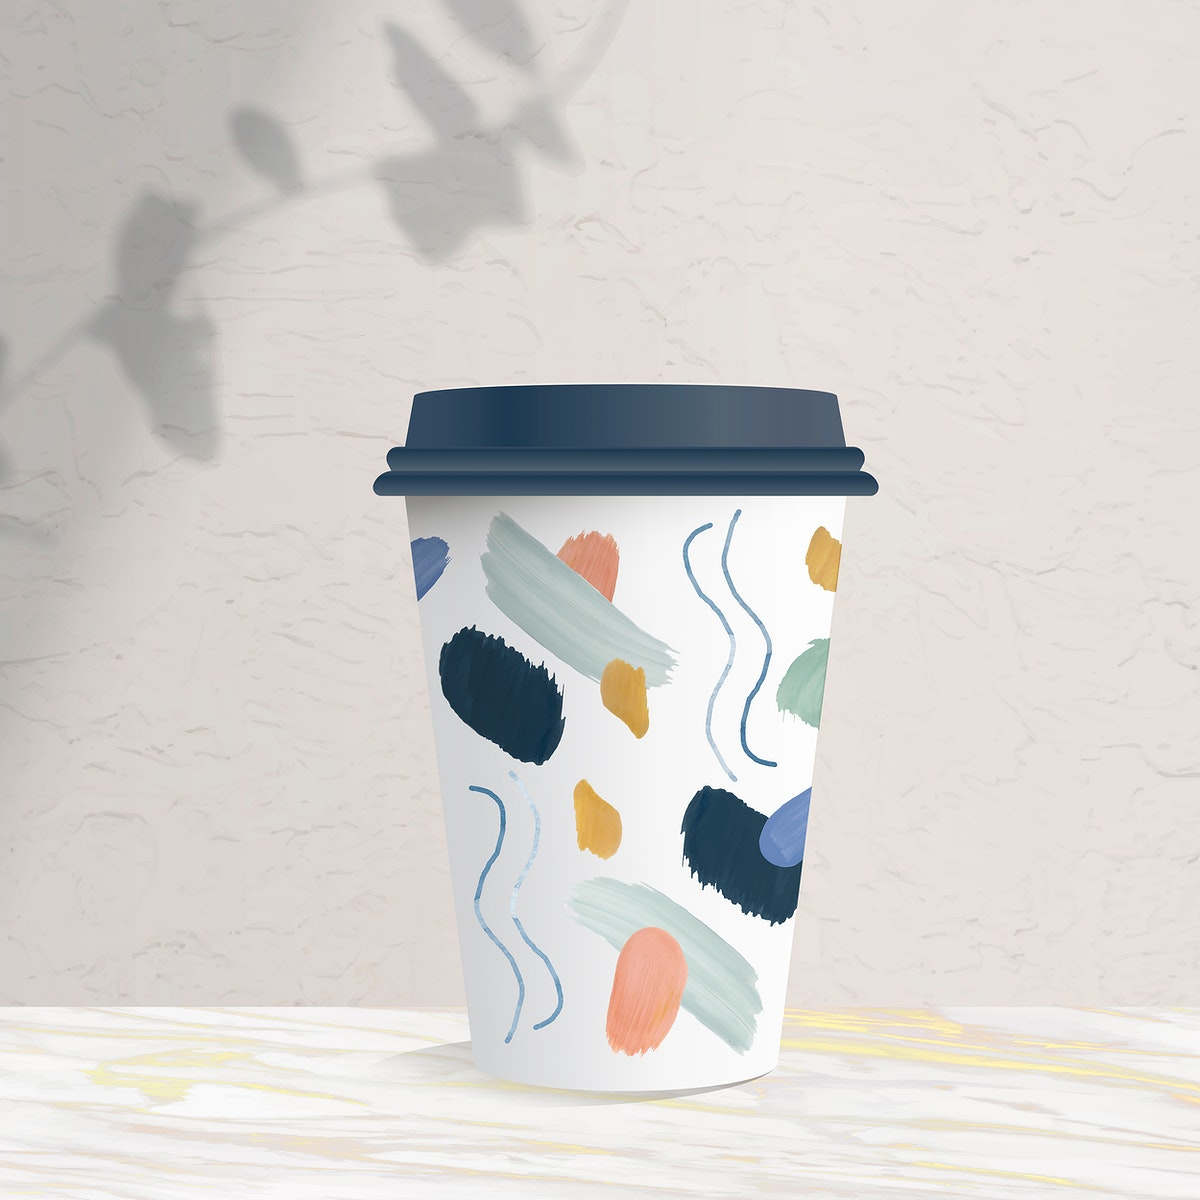 Abstract design element on a paper cup mockup vector